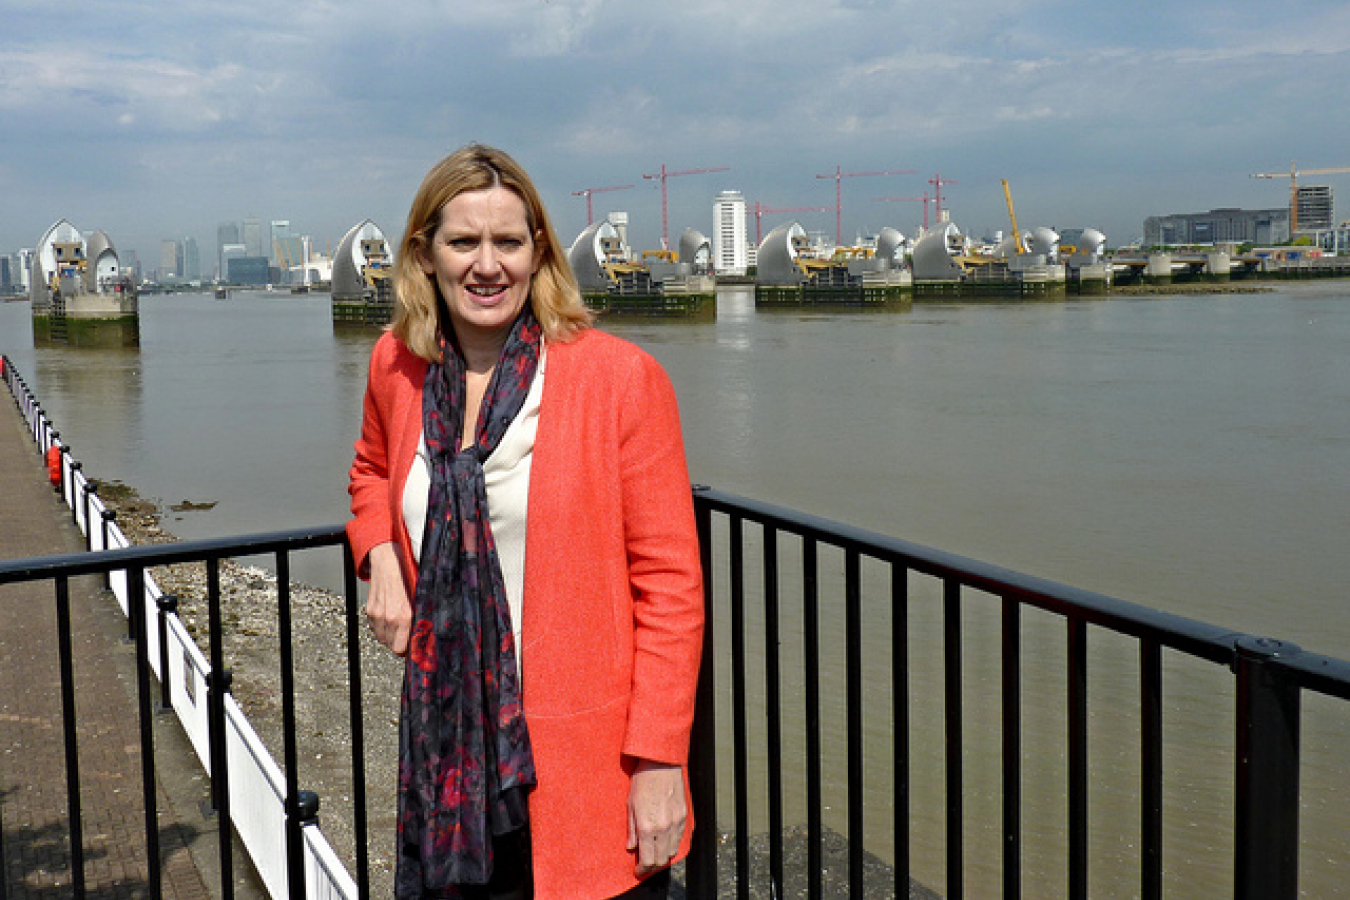 Amber Rudd in front of the Thames barrier